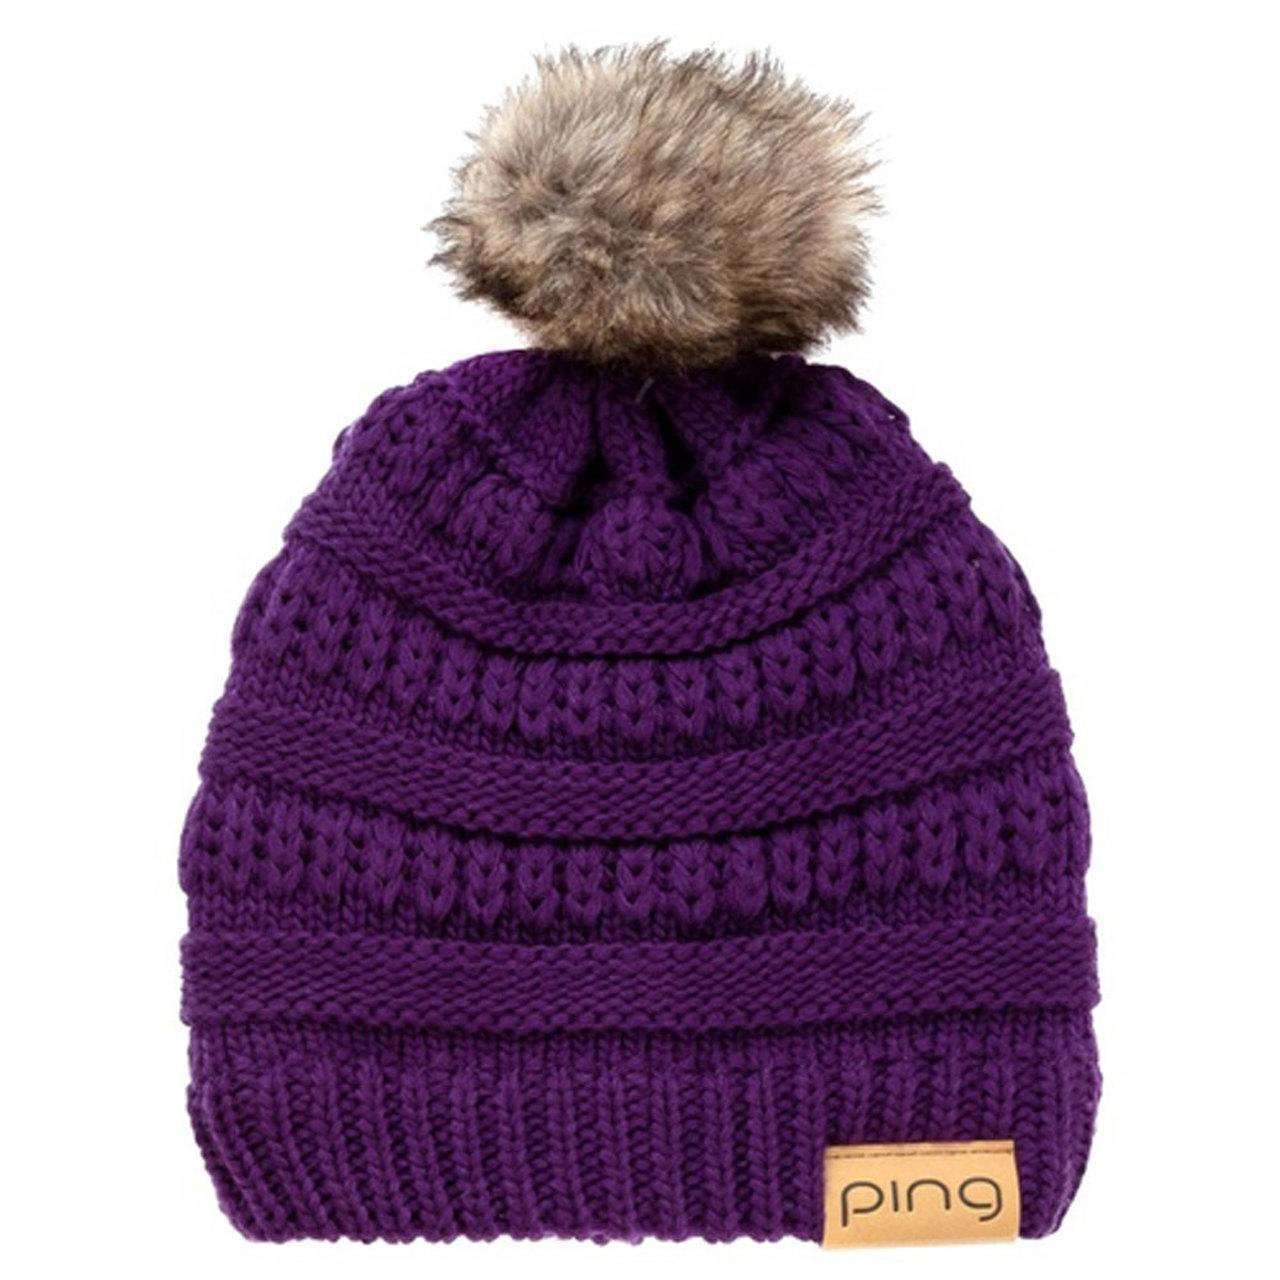 Purple Cable Knit Bobble Hat